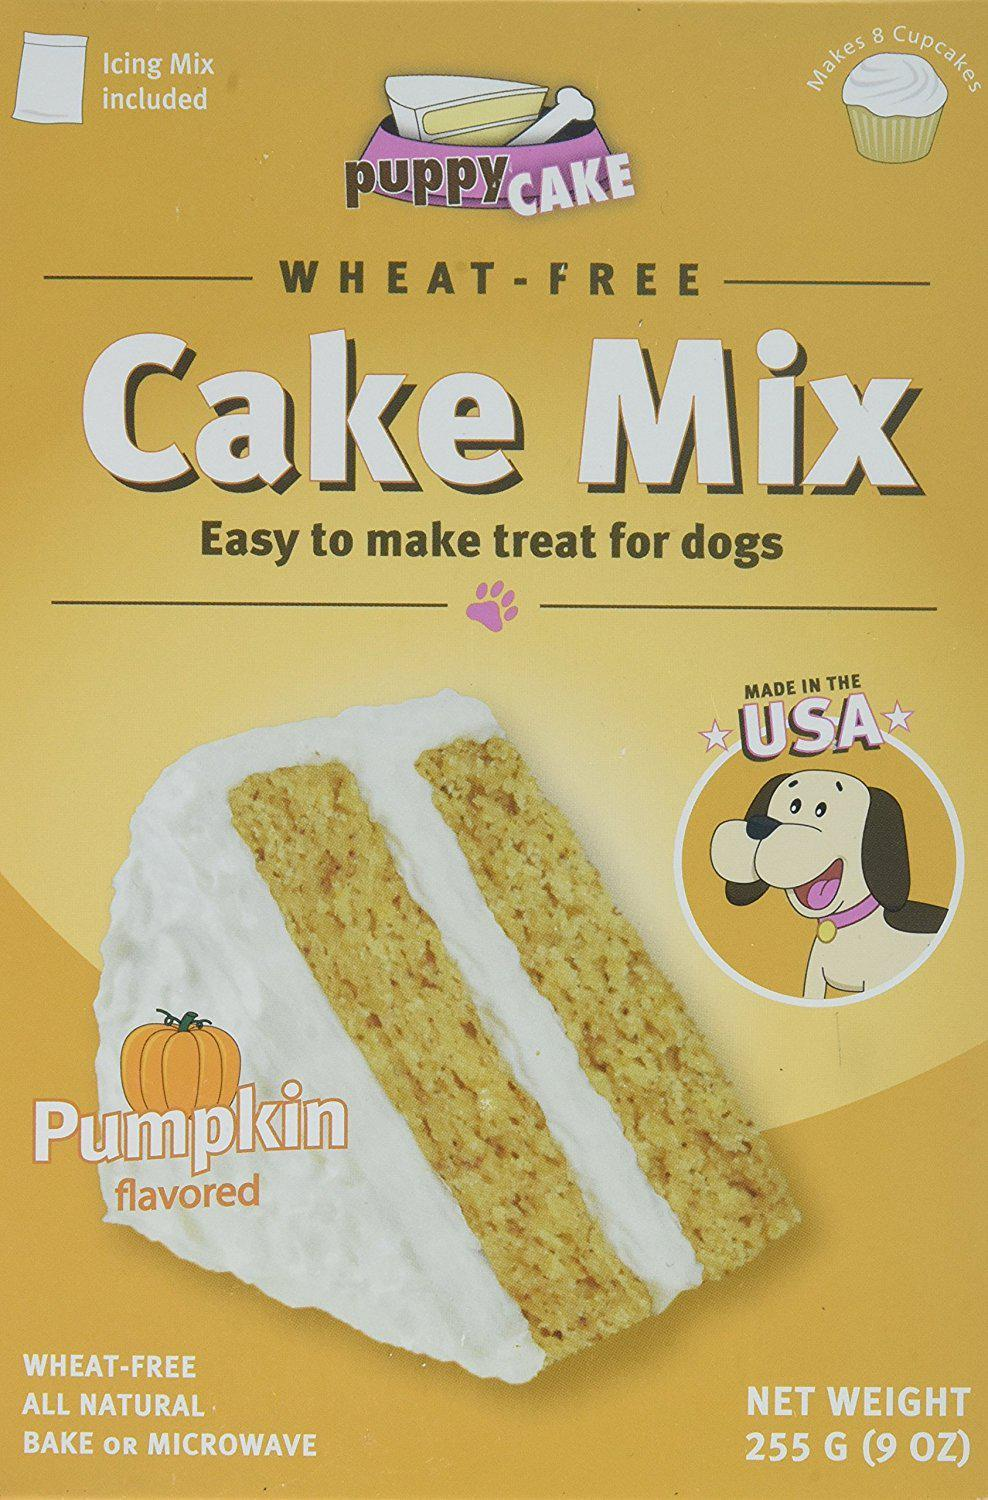 Puppy Cake Wheat-Free Cake Mix - Pumpkin Grain-Free Dog Treat, 9oz.-Le Pup Pet Supplies and Grooming